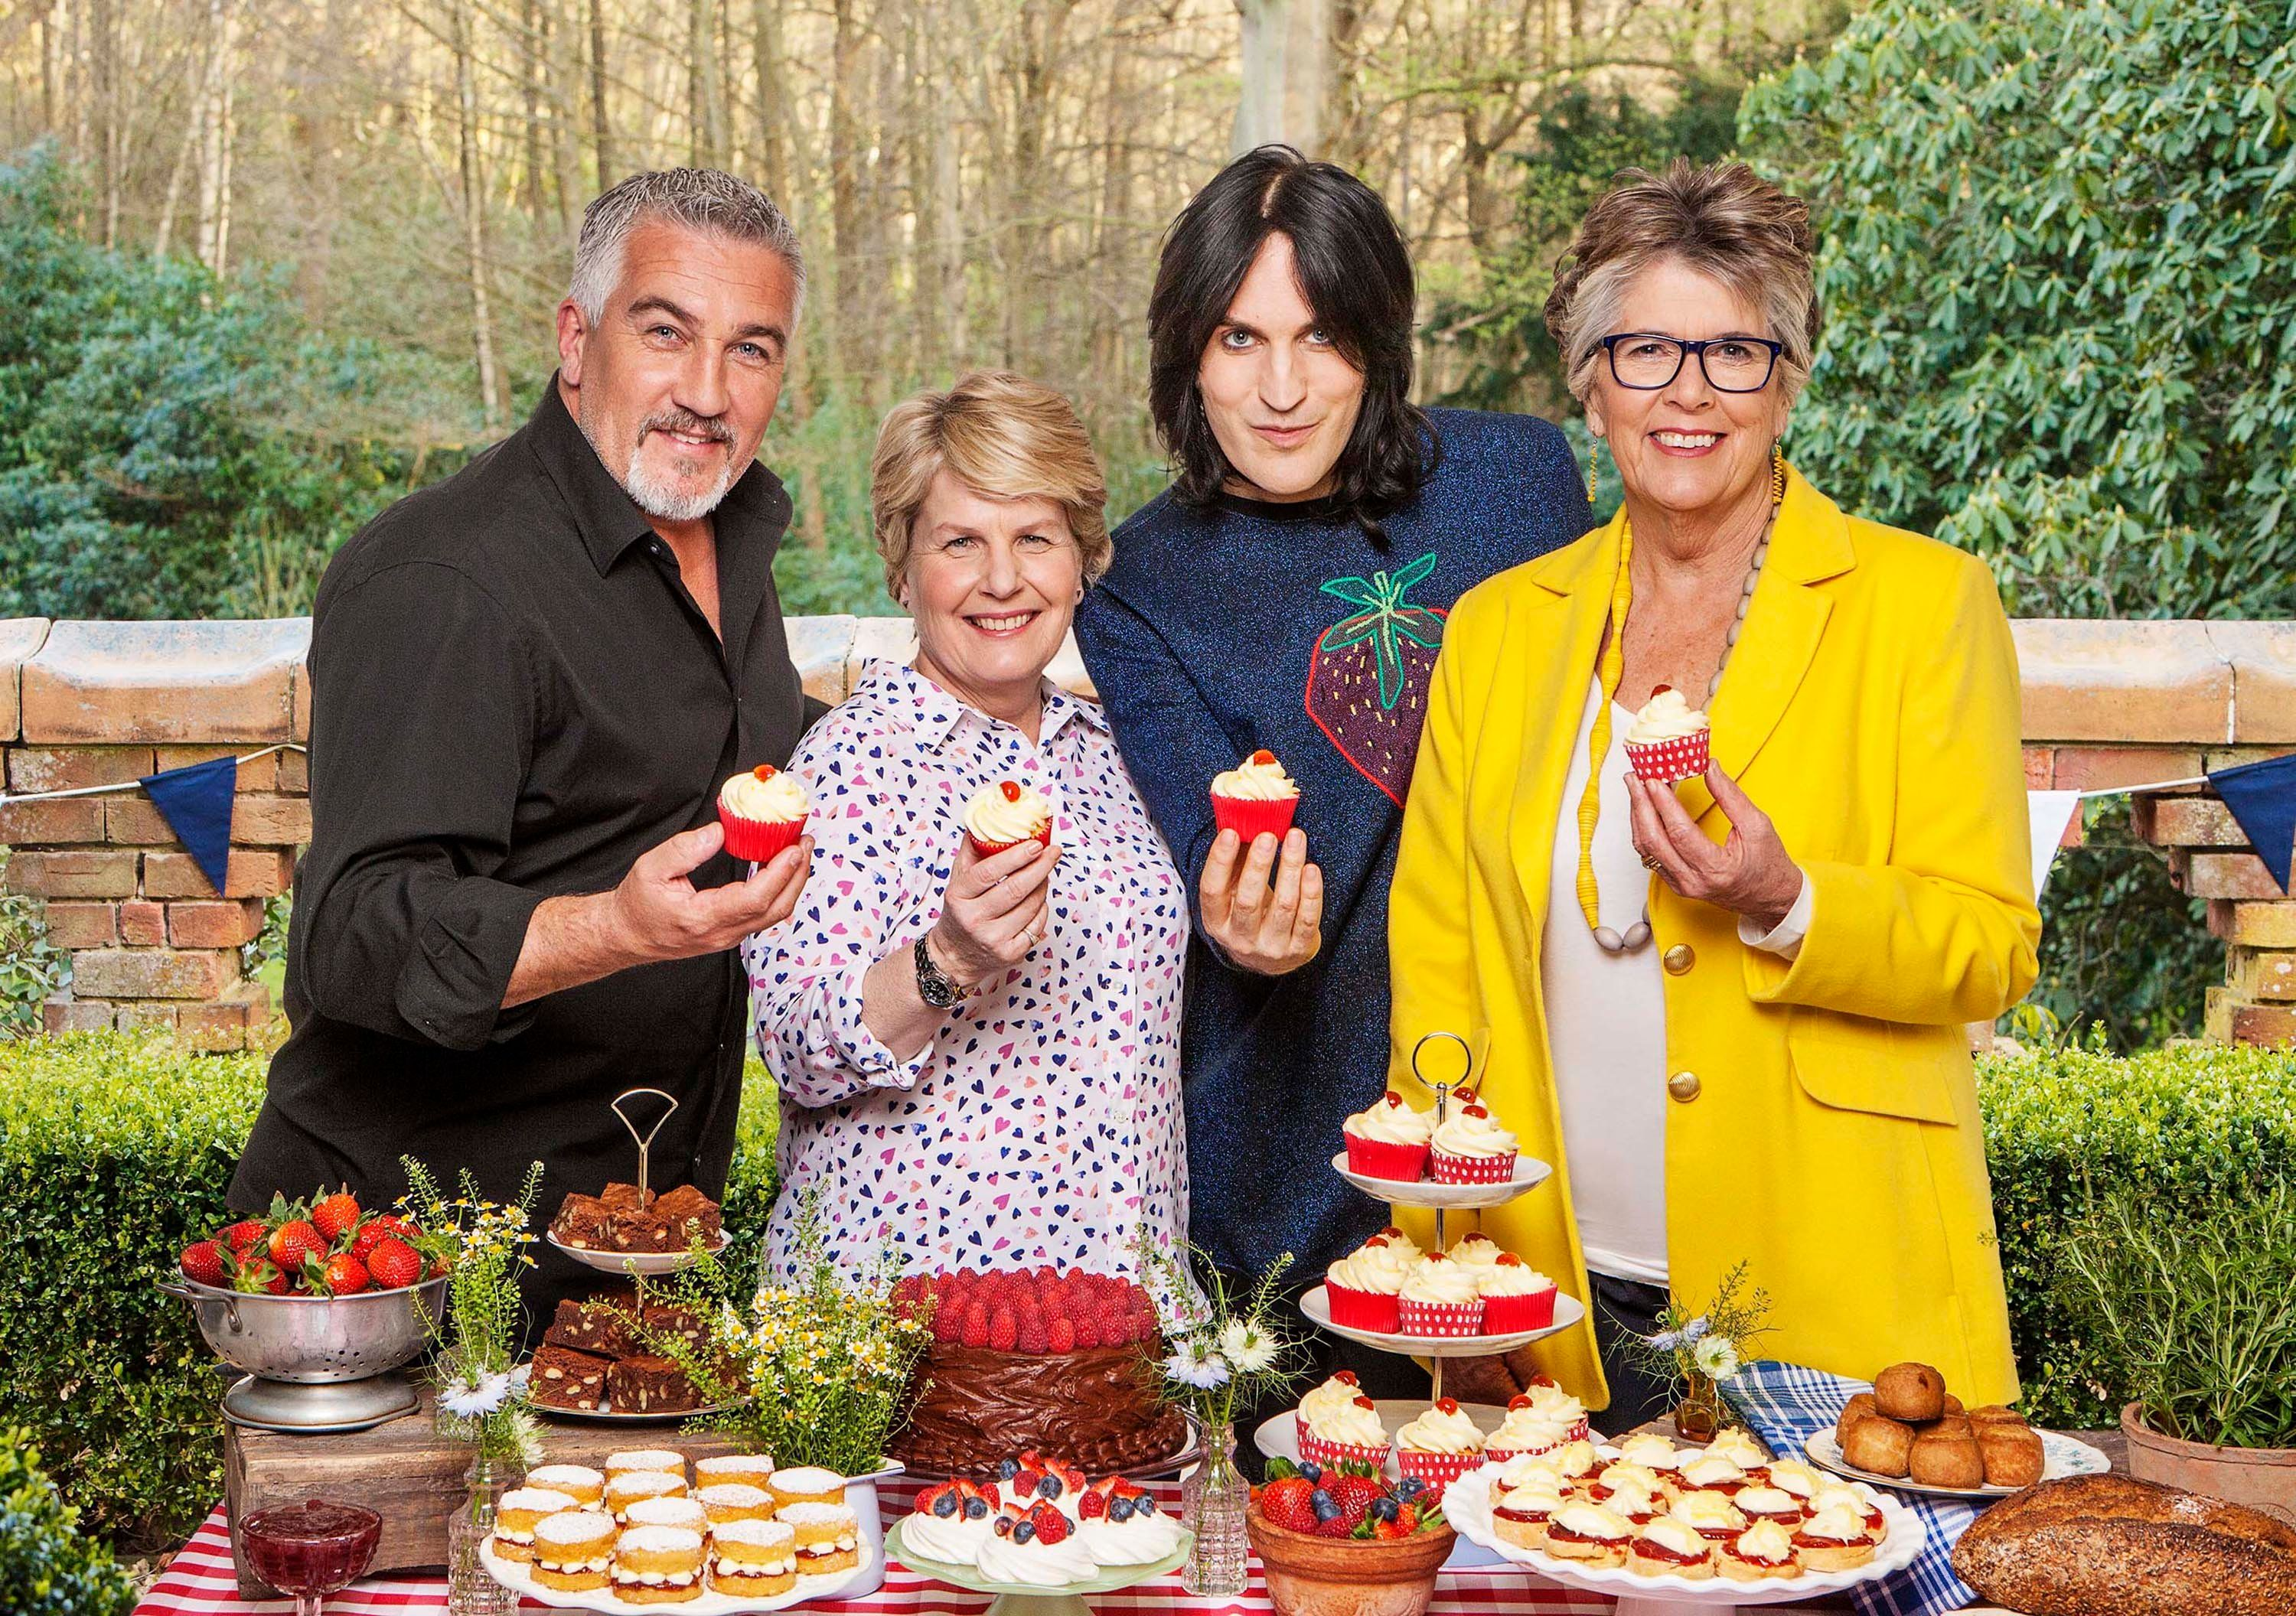 'Great British Bake Off': 9 Reasons Why The Biggest Show On TV Is As Tasty As